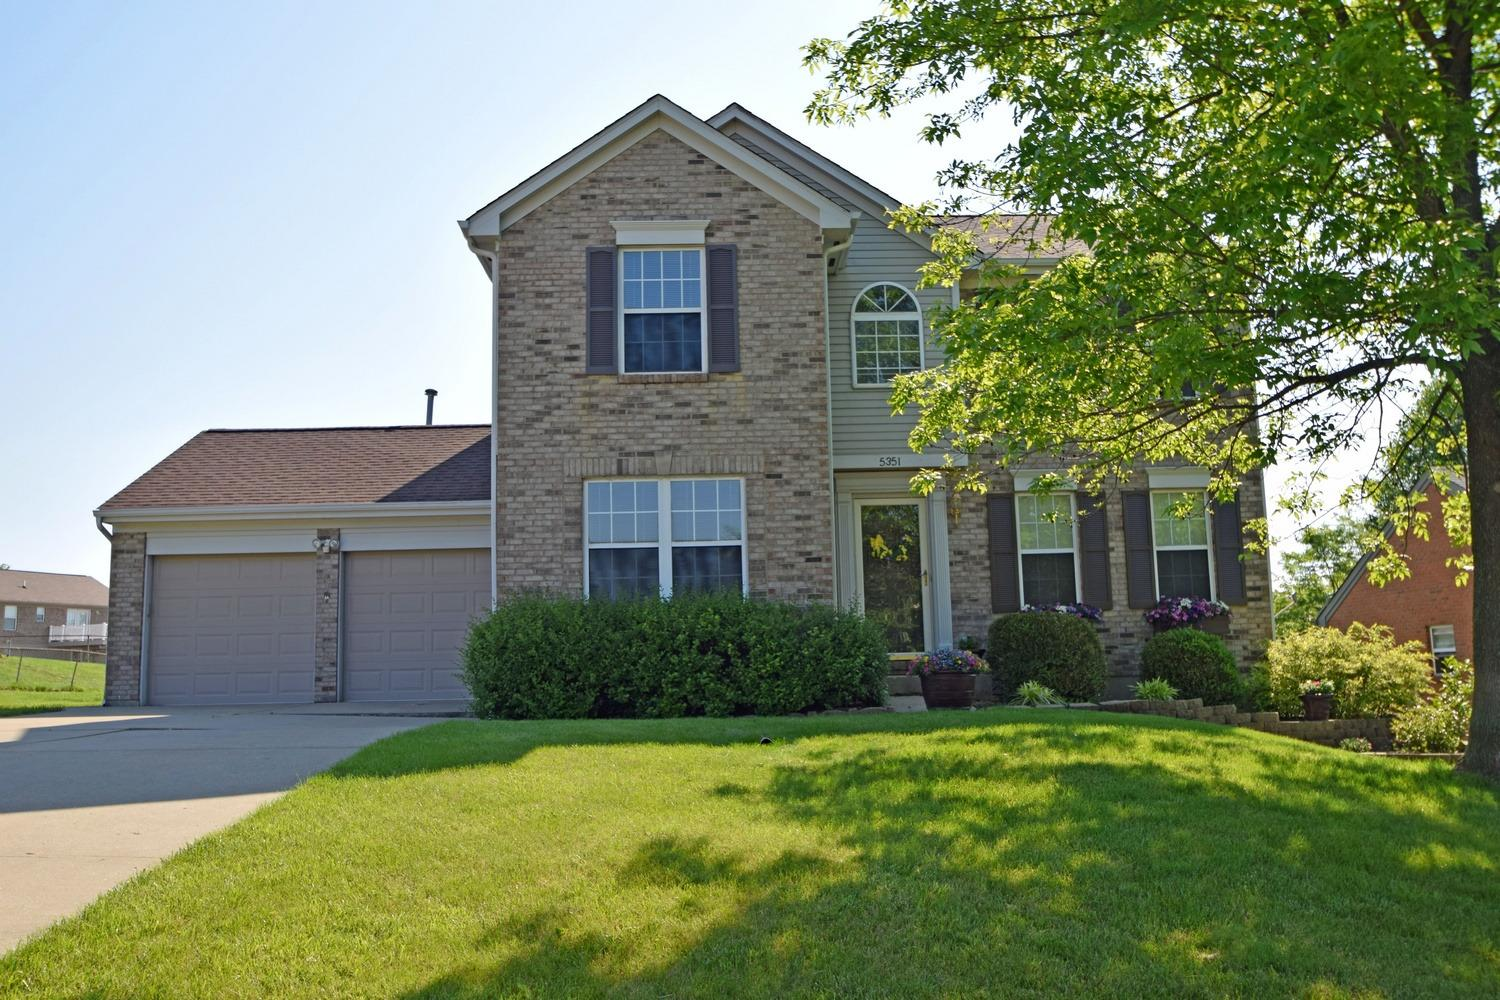 Photo 1 for 5351 Millcreek Cir Independence, KY 41051